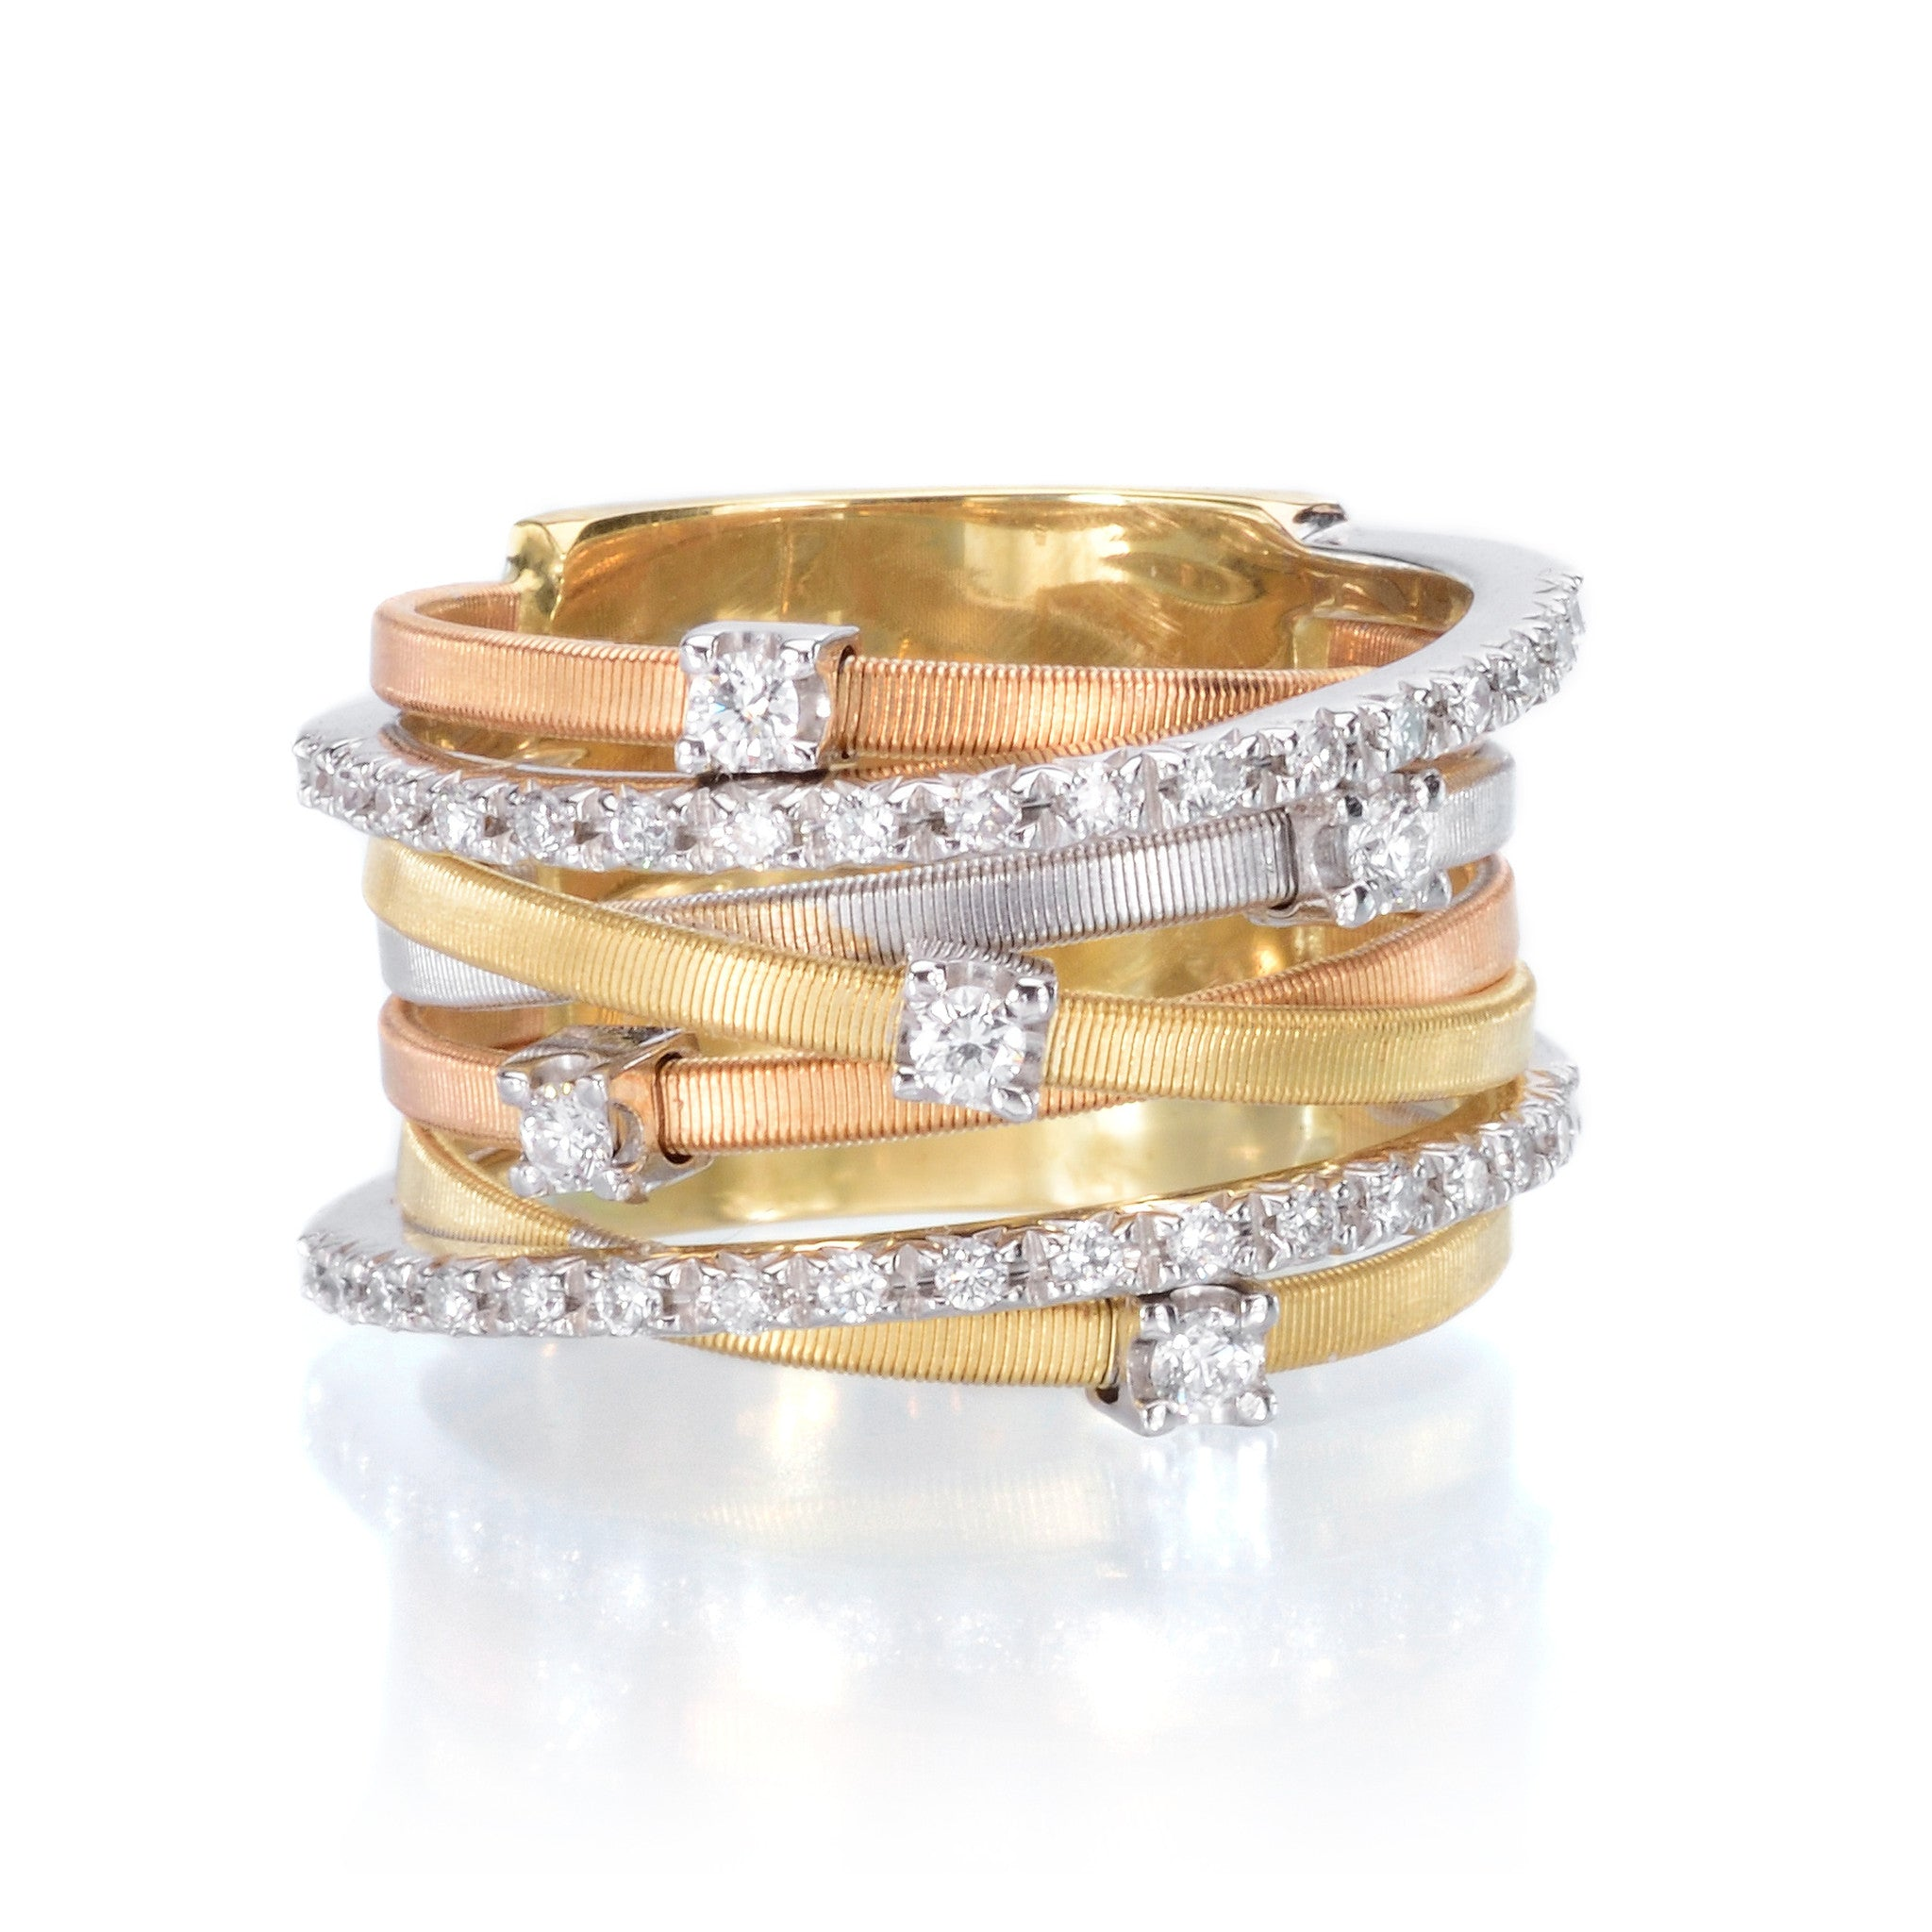 Goa 18K Yellow, White, and Rose Gold Seven Strand Ring with Diamonds